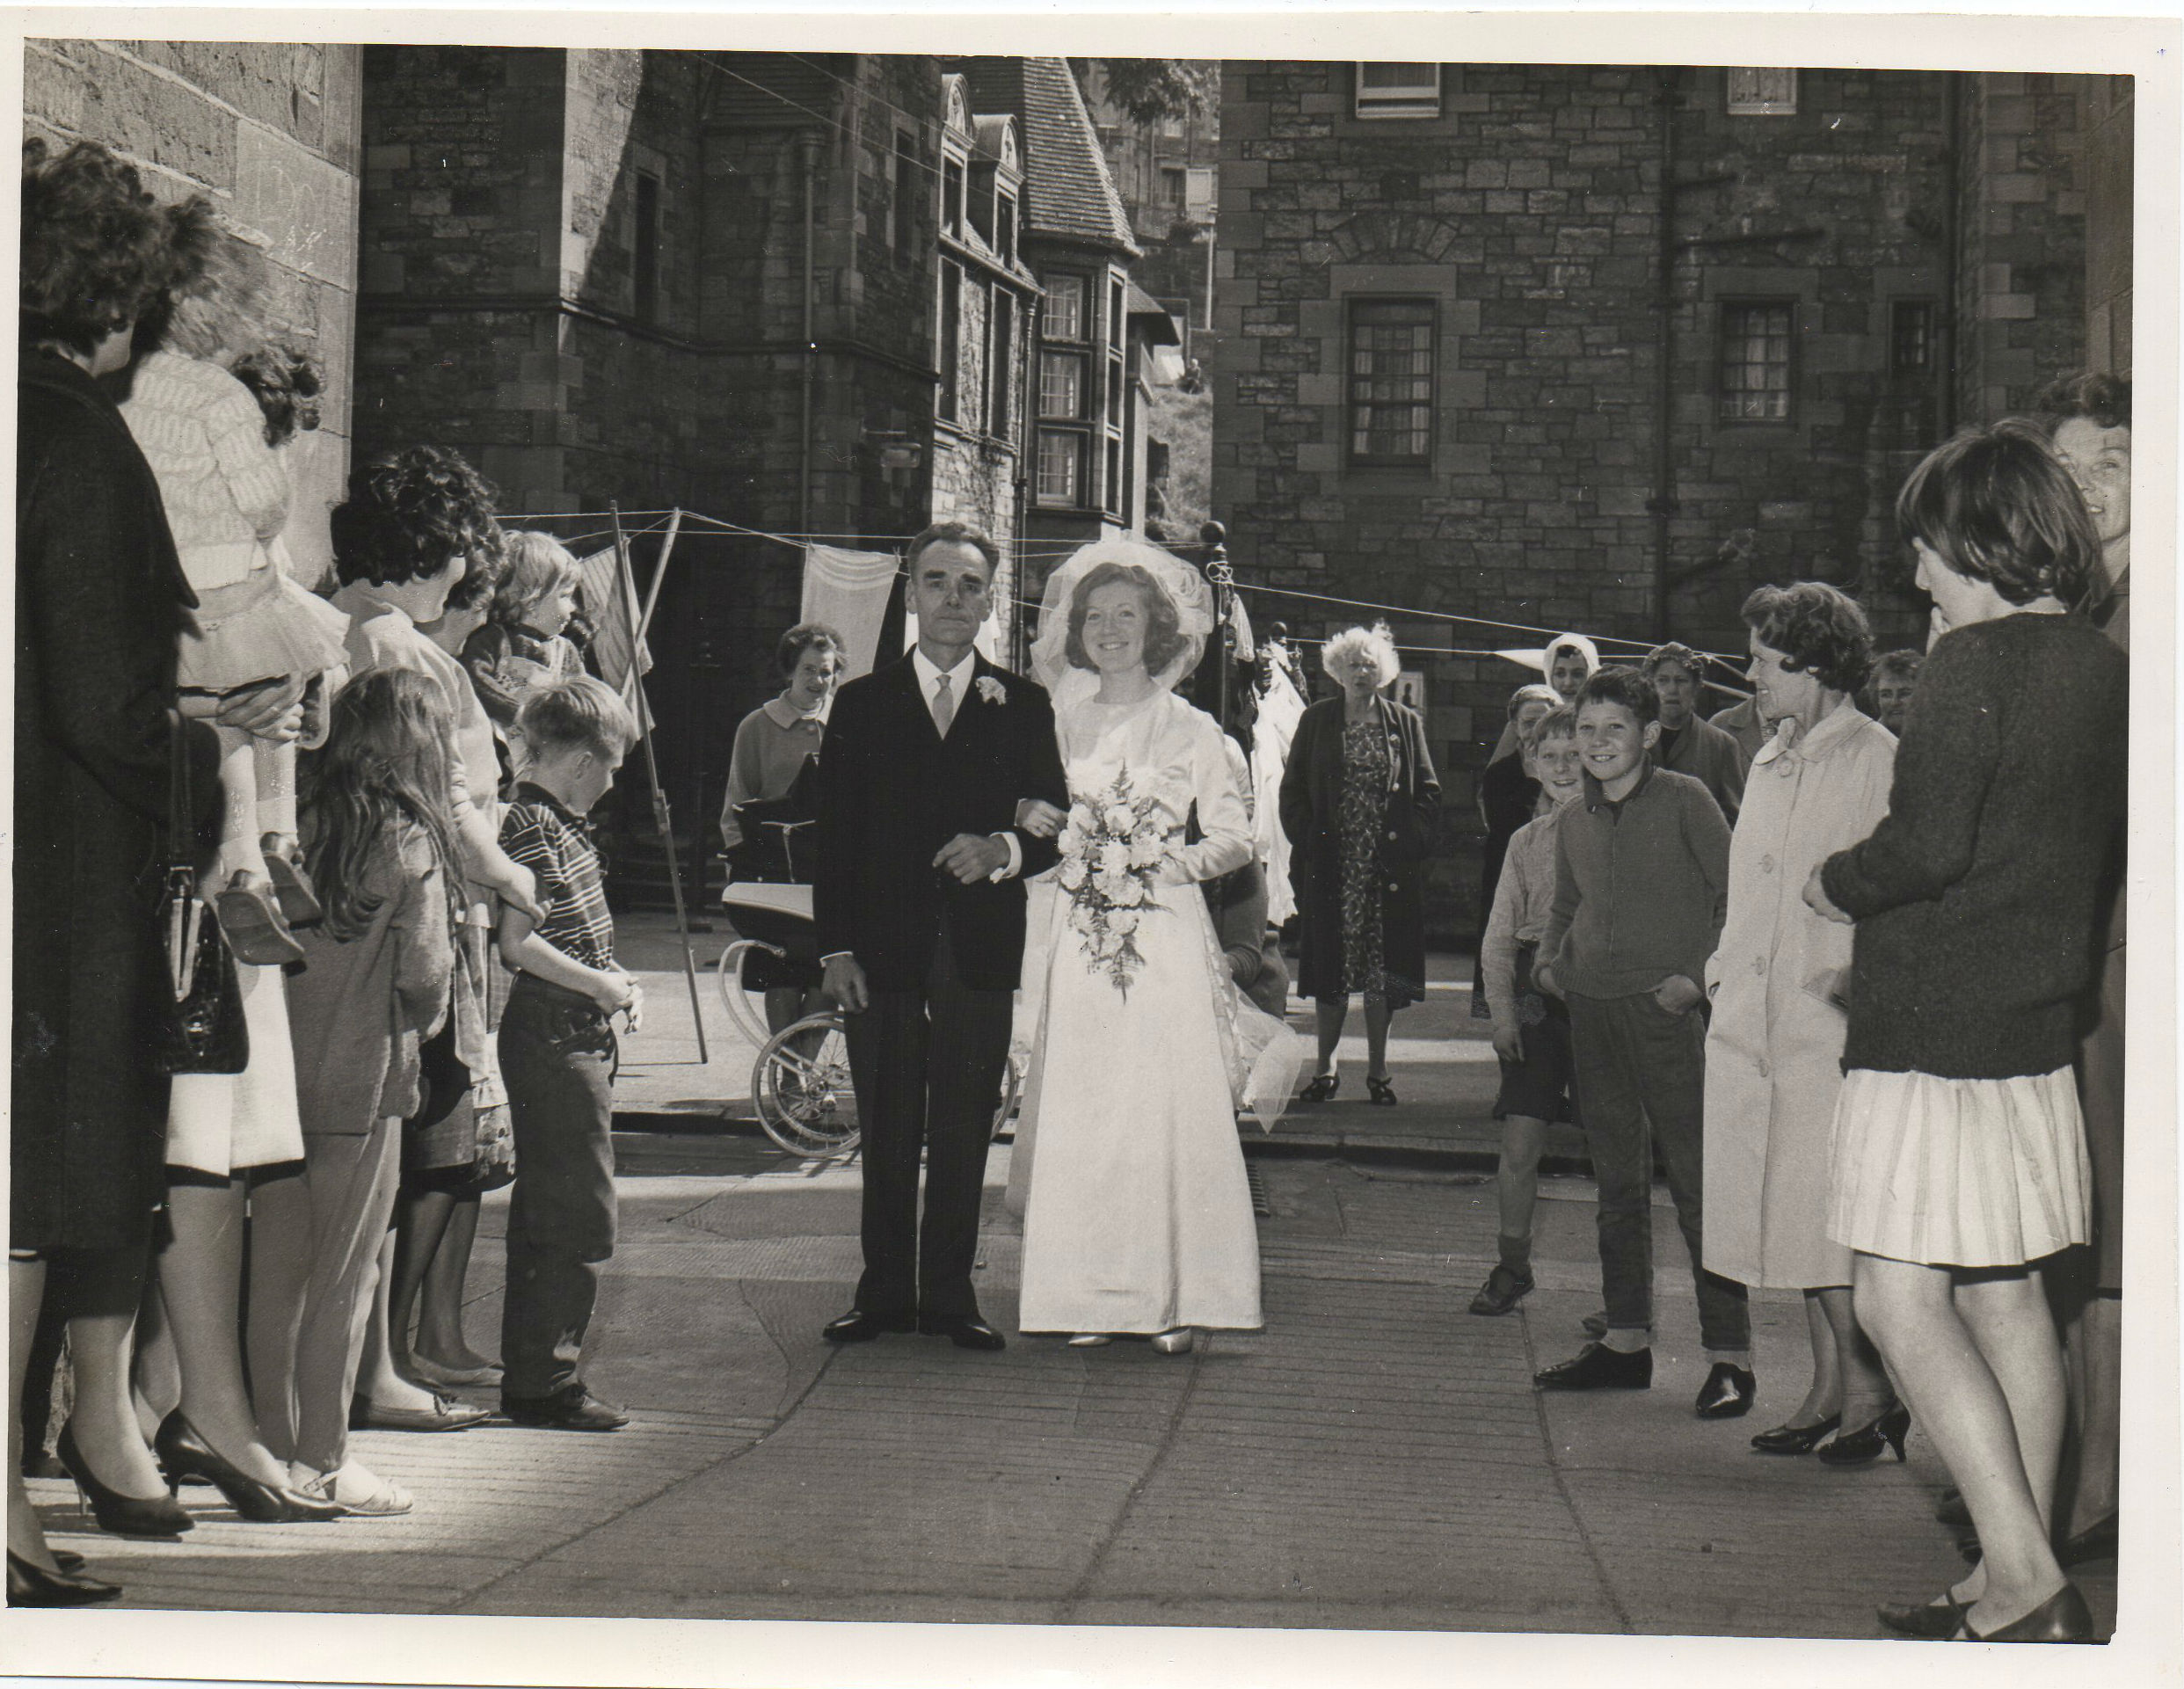 Kathleen Glancy's Wedding Day